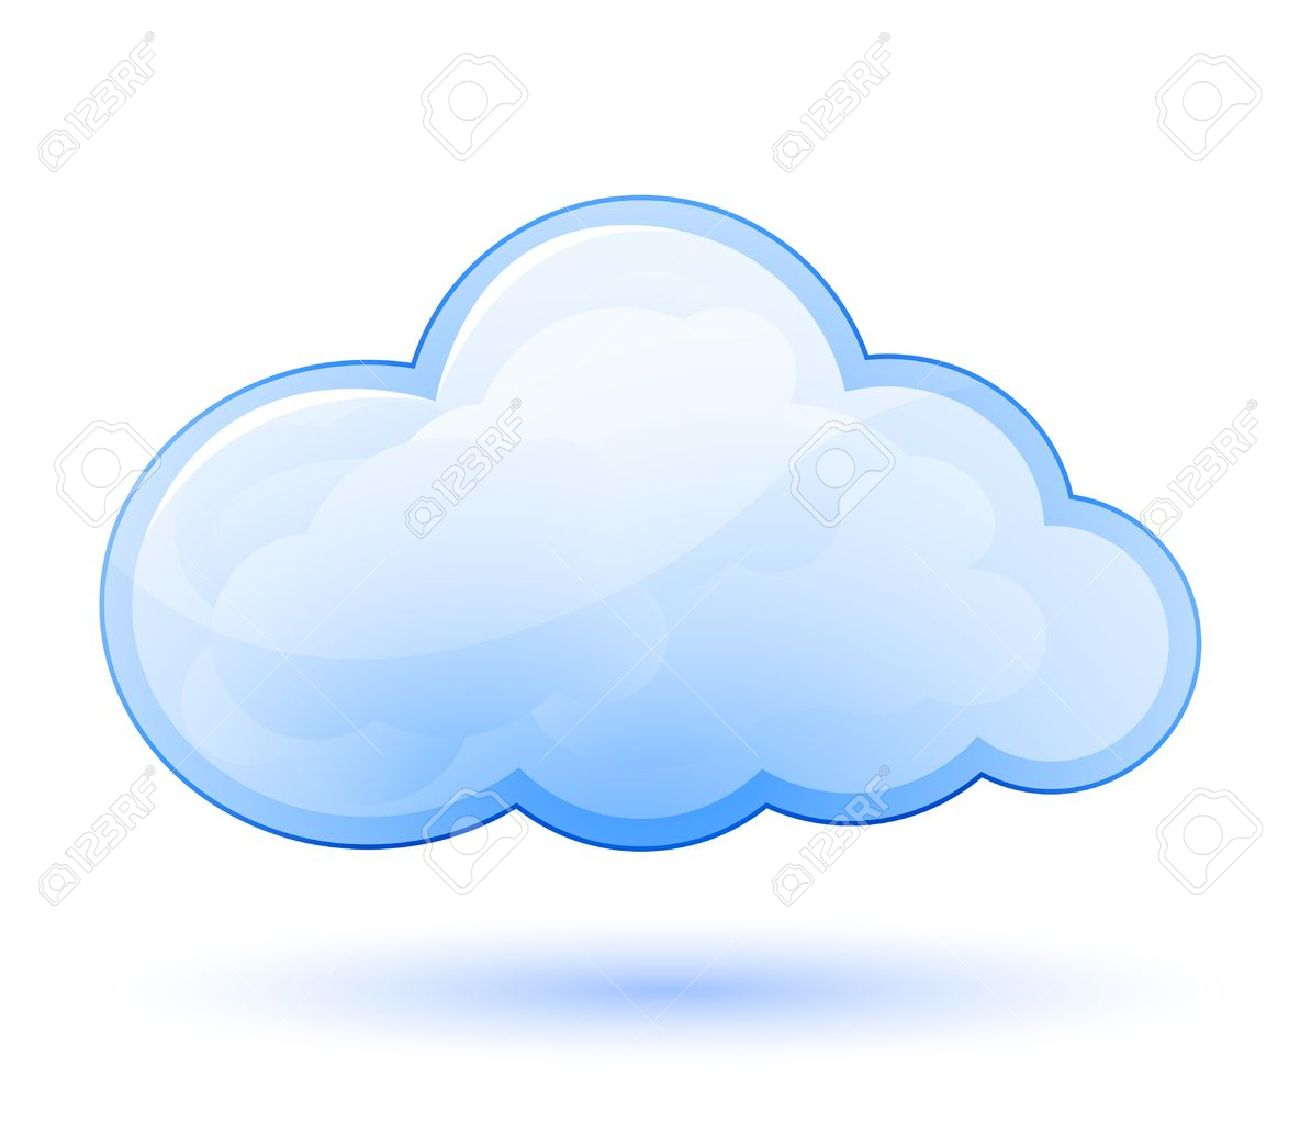 cloud glossy icon vector illustration royalty free cliparts rh 123rf com vector clouds illustrator vector cloud shape